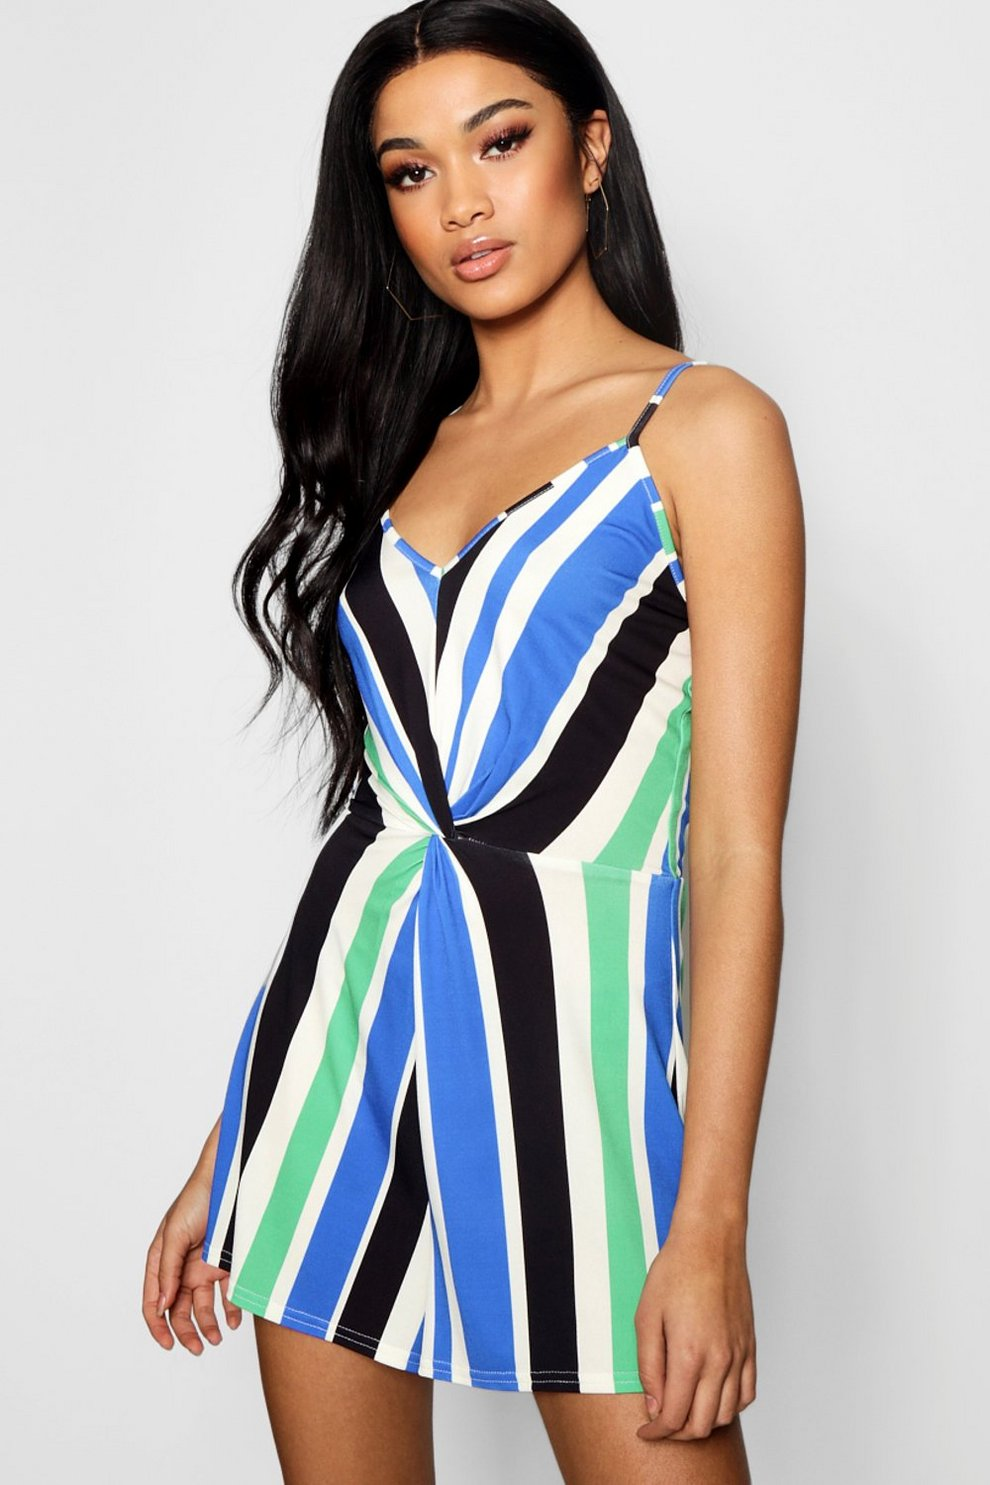 Boohoo Strappy Twist Front Stripe Playsuit Offer Buy Cheap Best Prices Cheap Footaction DxTLxDmvn